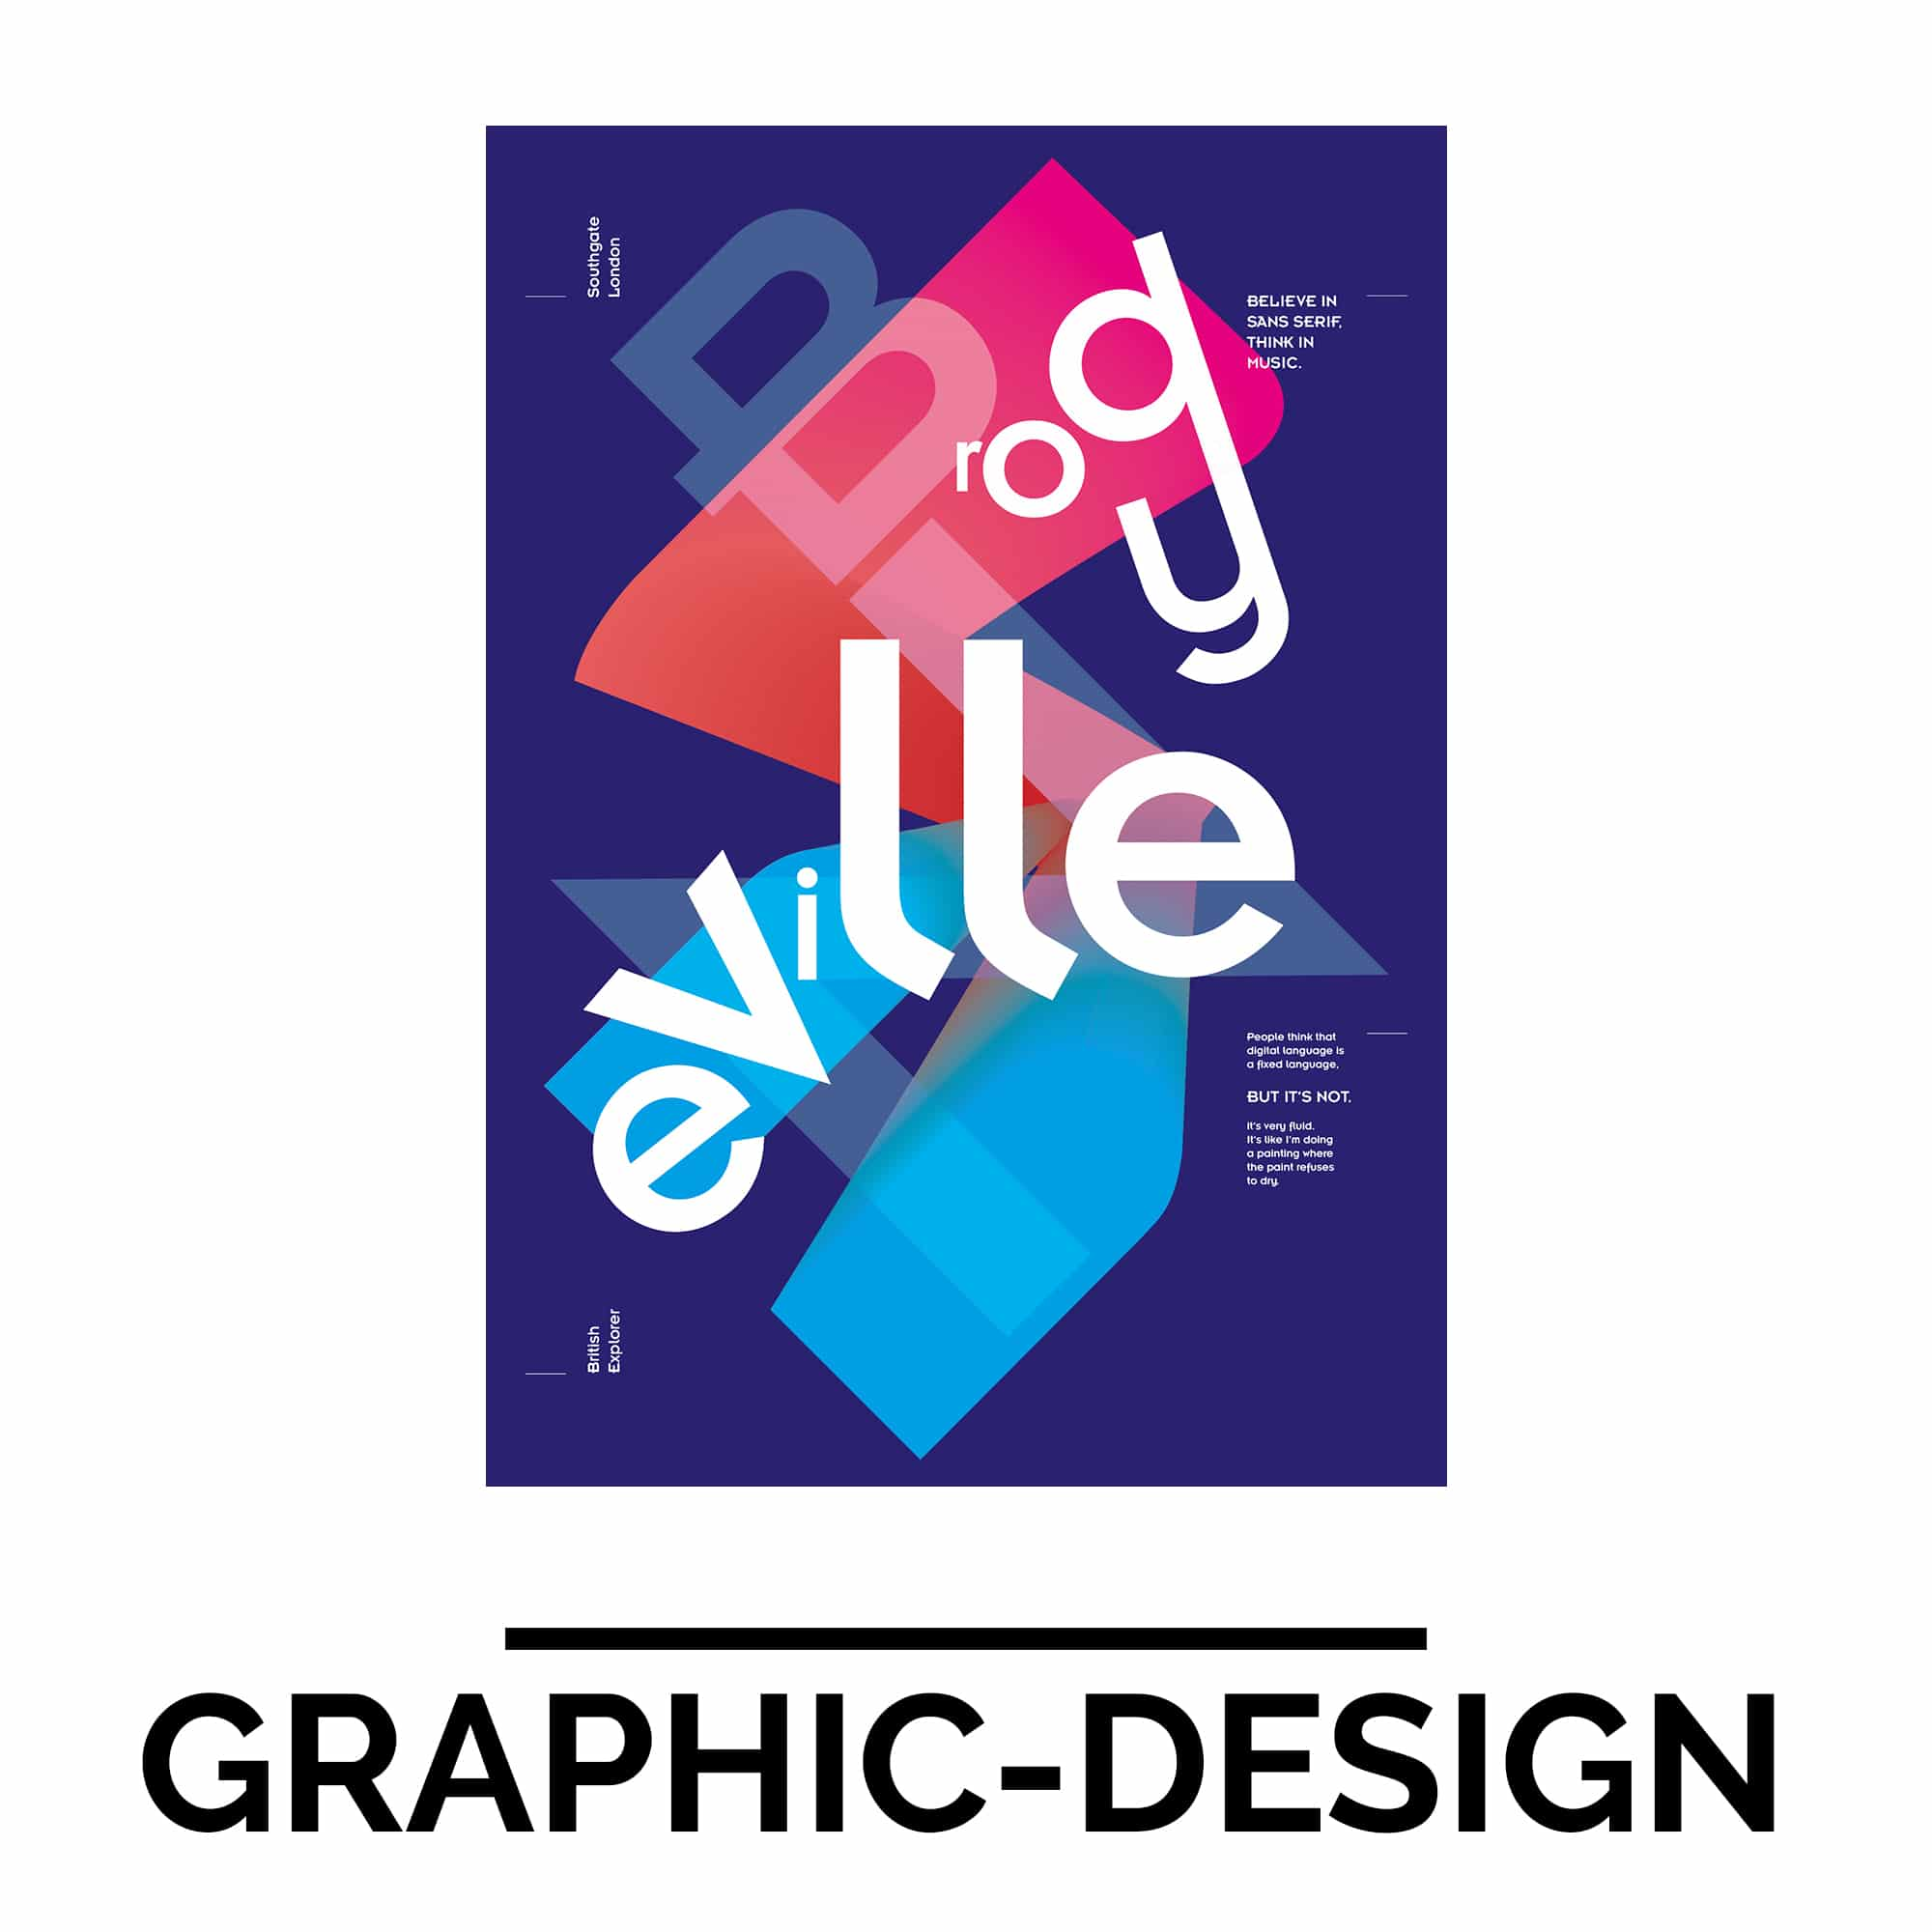 graphicdesign-neu-eng